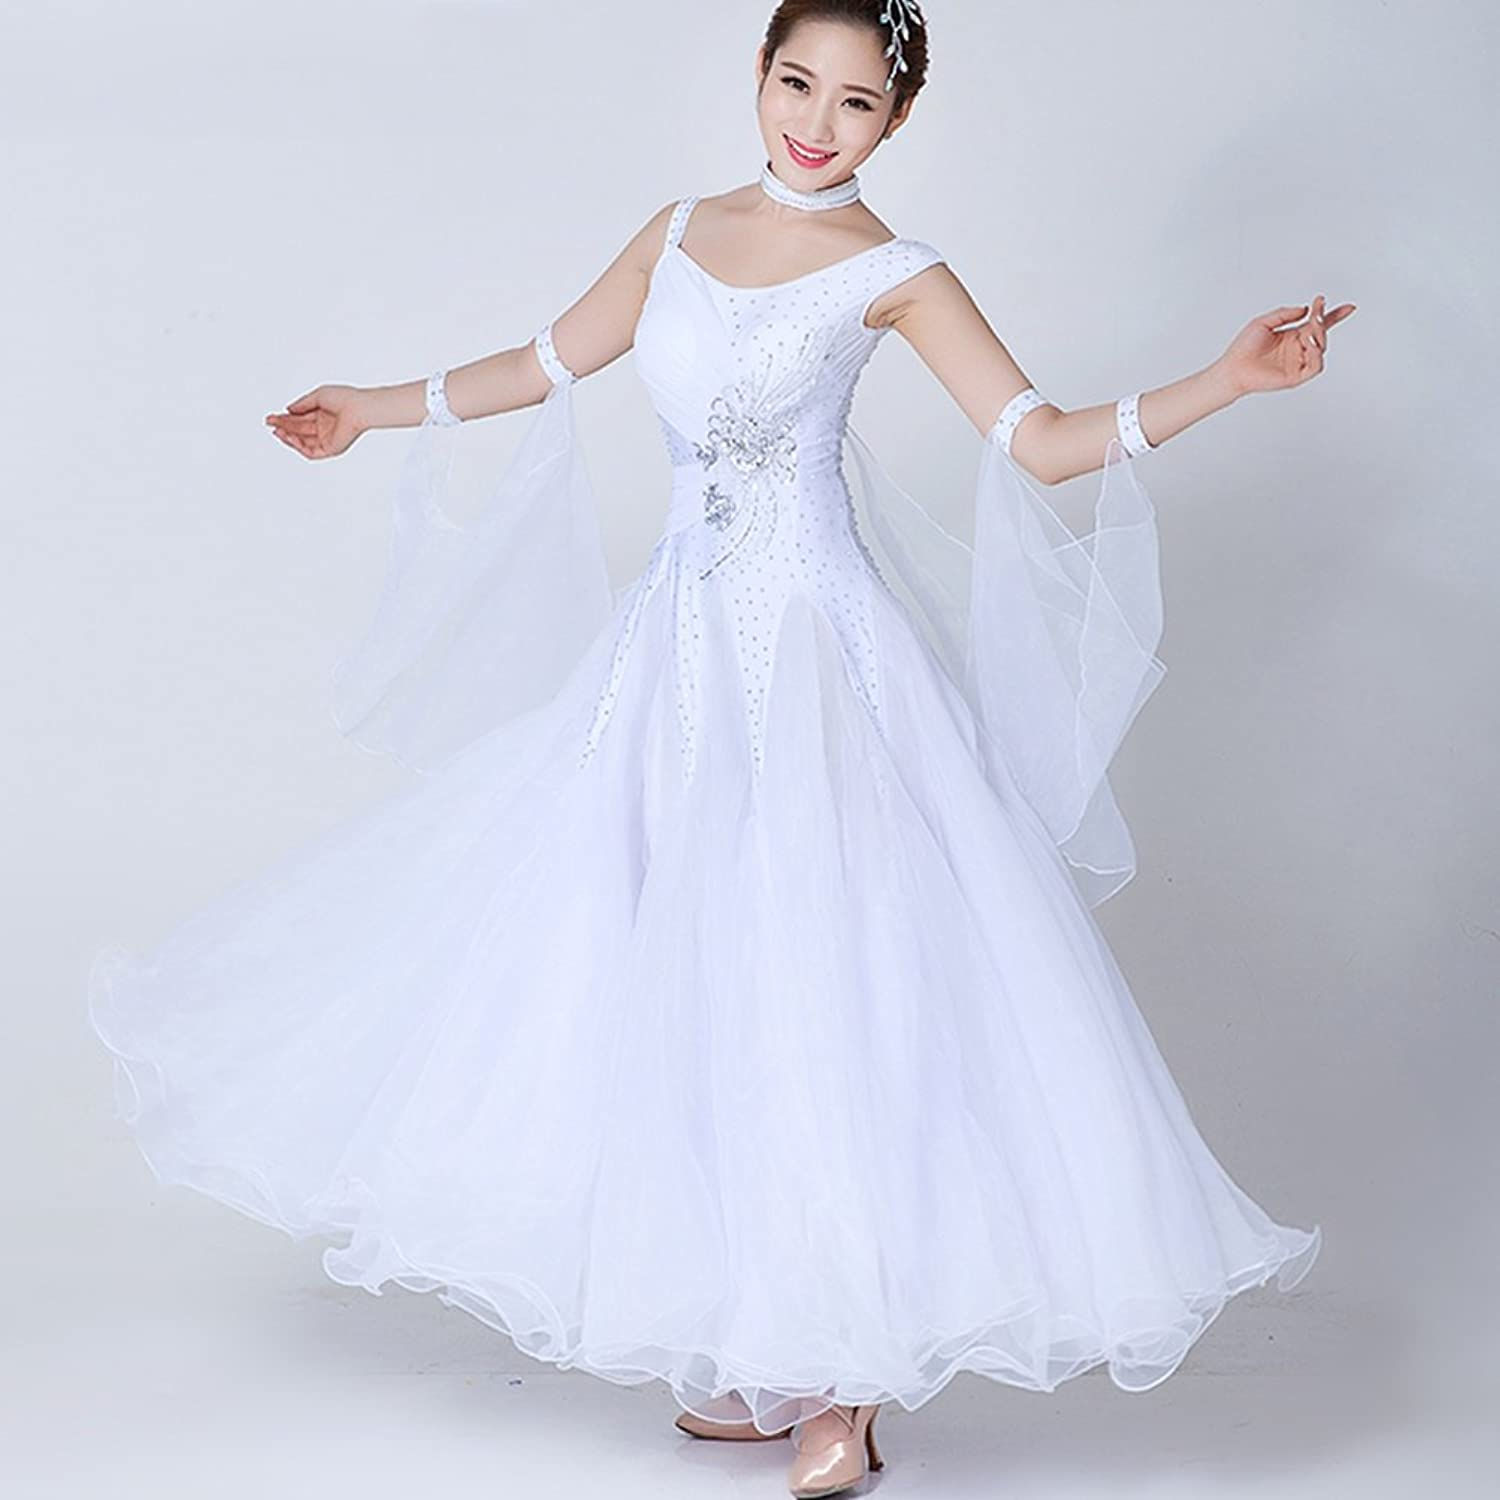 National Standard Ballroom Dance Dresses Women's Competition Performance Costume Tulle Crystals Rhinestones Tango Waltz Foxtred Natural Dress